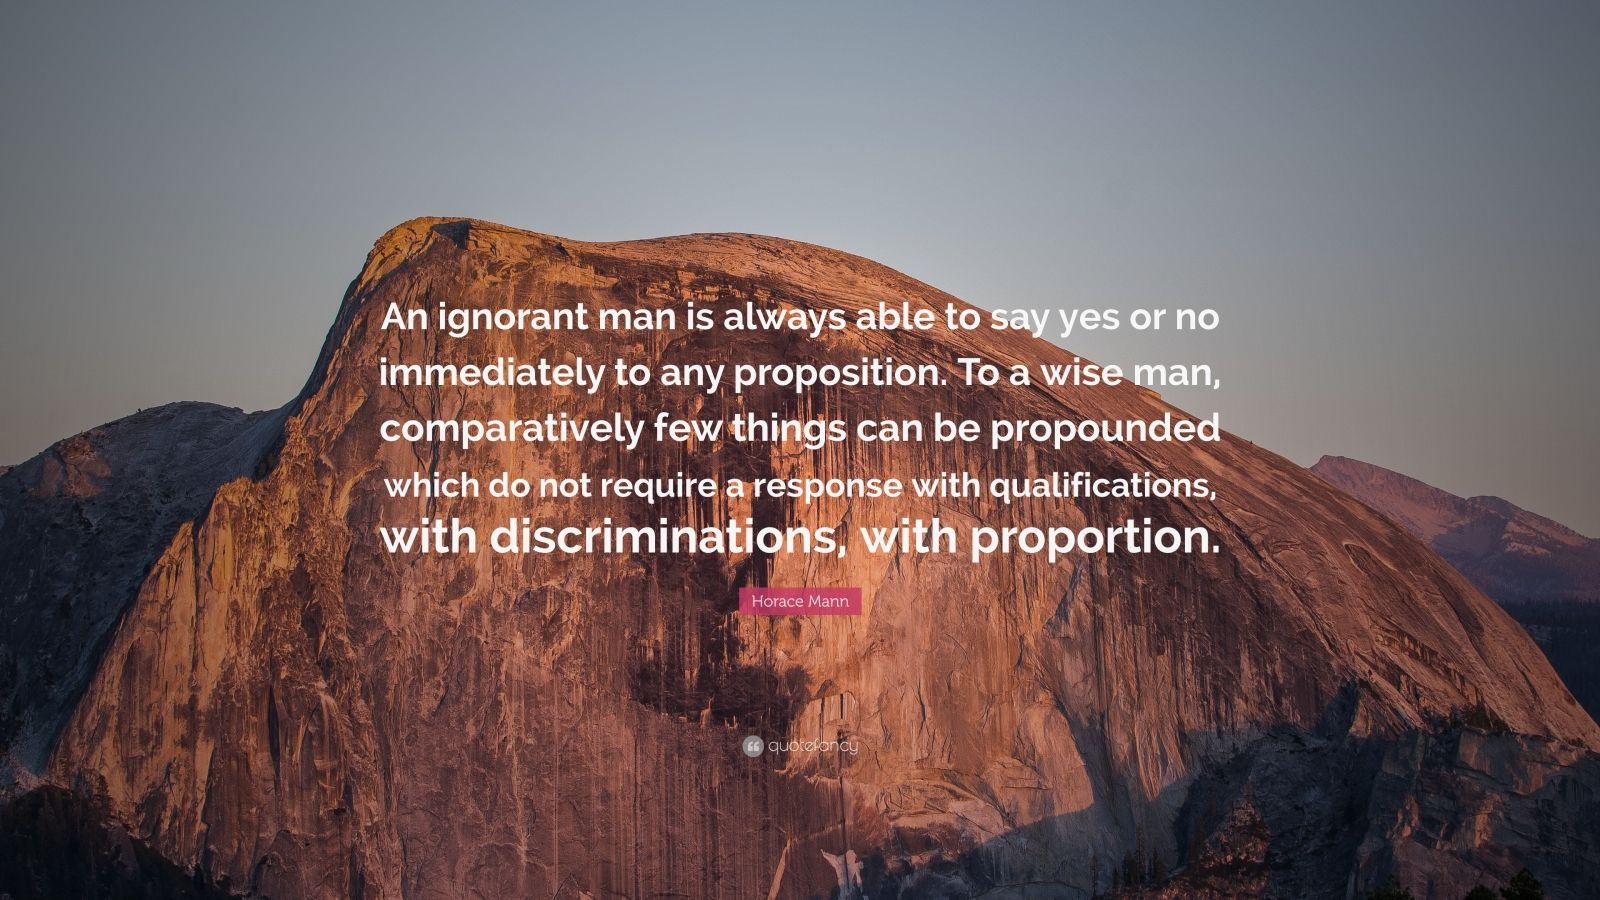 """Horace Mann Quote: """"An ignorant man is always able to say yes or no immediately to any proposition. To a wise man, comparatively few things can be propounded which do not require a response with qualifications, with discriminations, with proportion."""""""